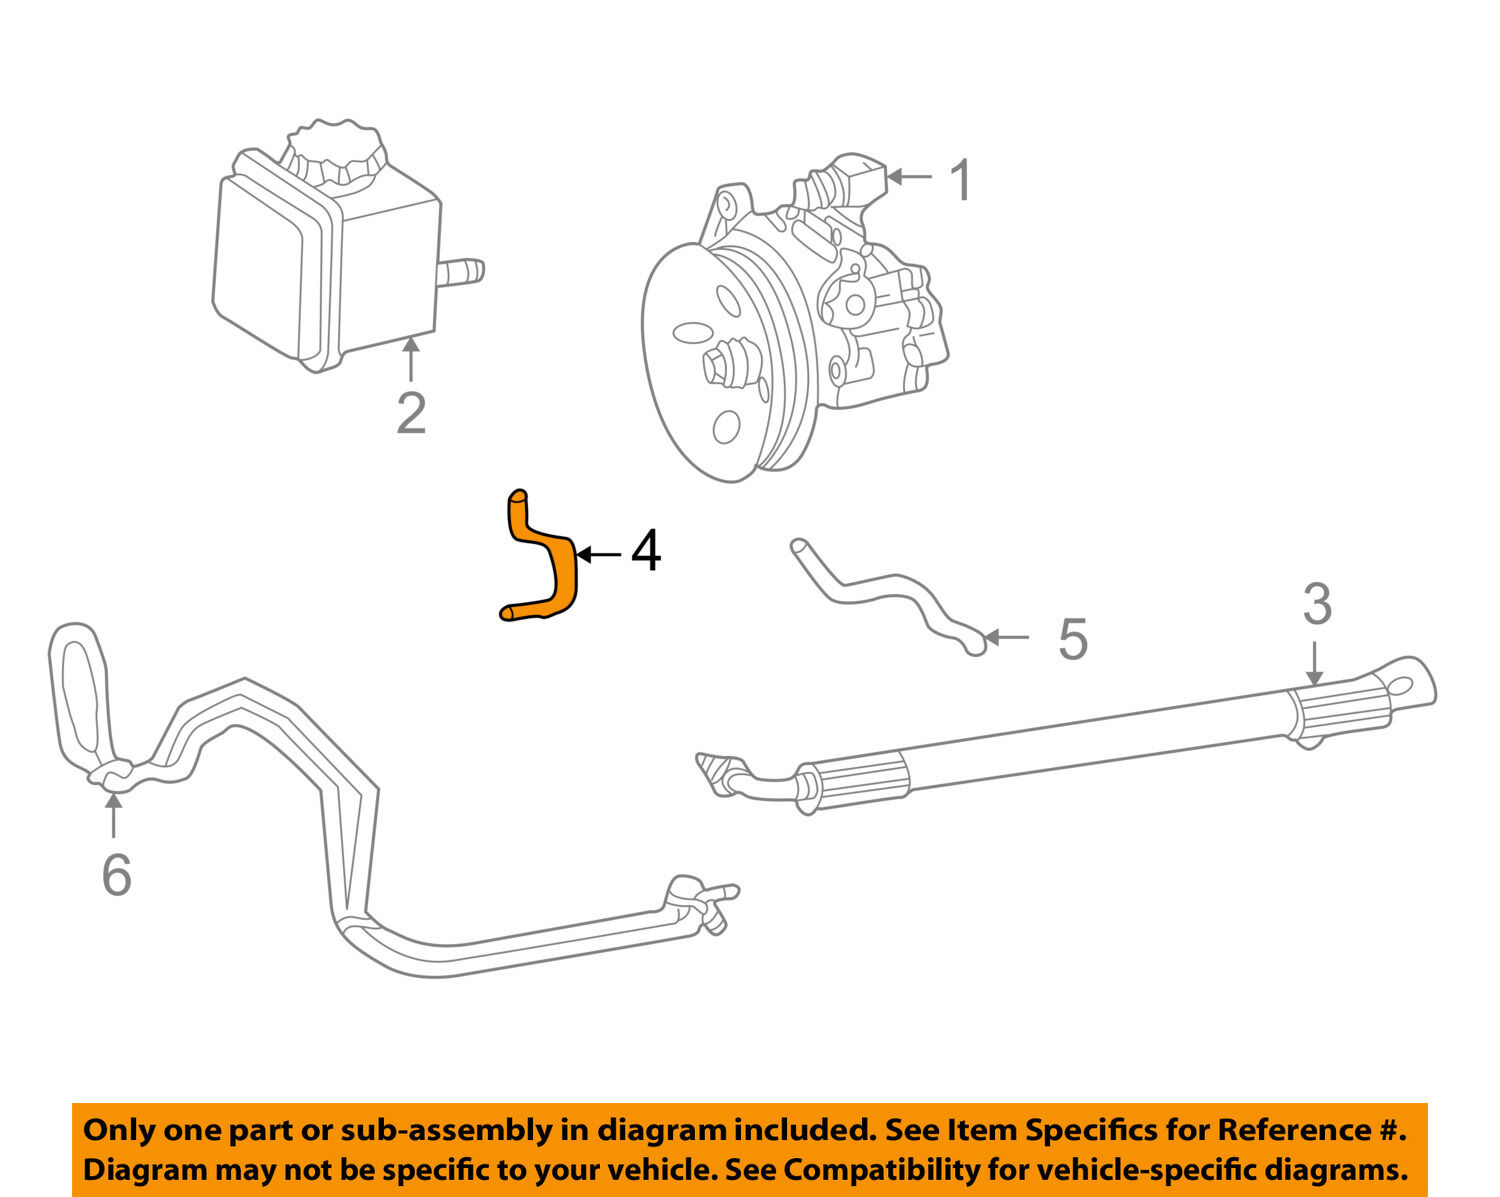 Mercedes Oem 01 05 C320 Power Steering Pump Upper Return Line Hose Engine Diagram 1 Of 2only Available